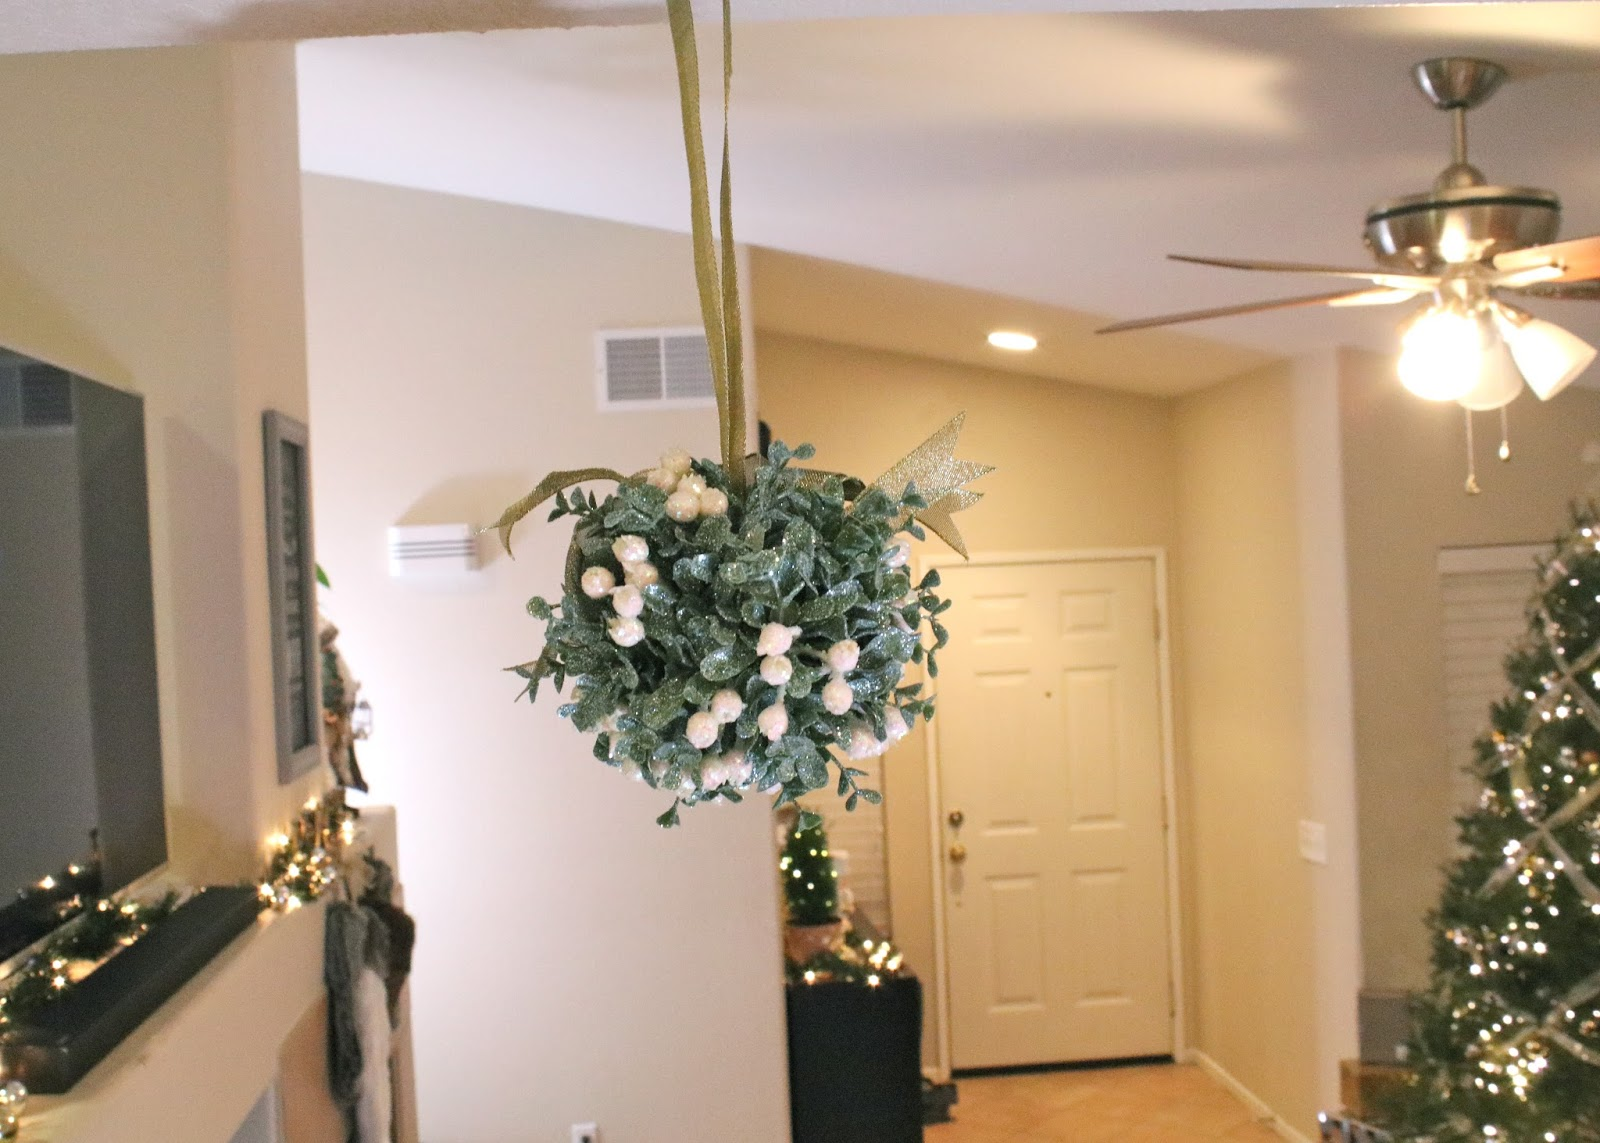 Sparkly mistletoe, Holiday Home Tour